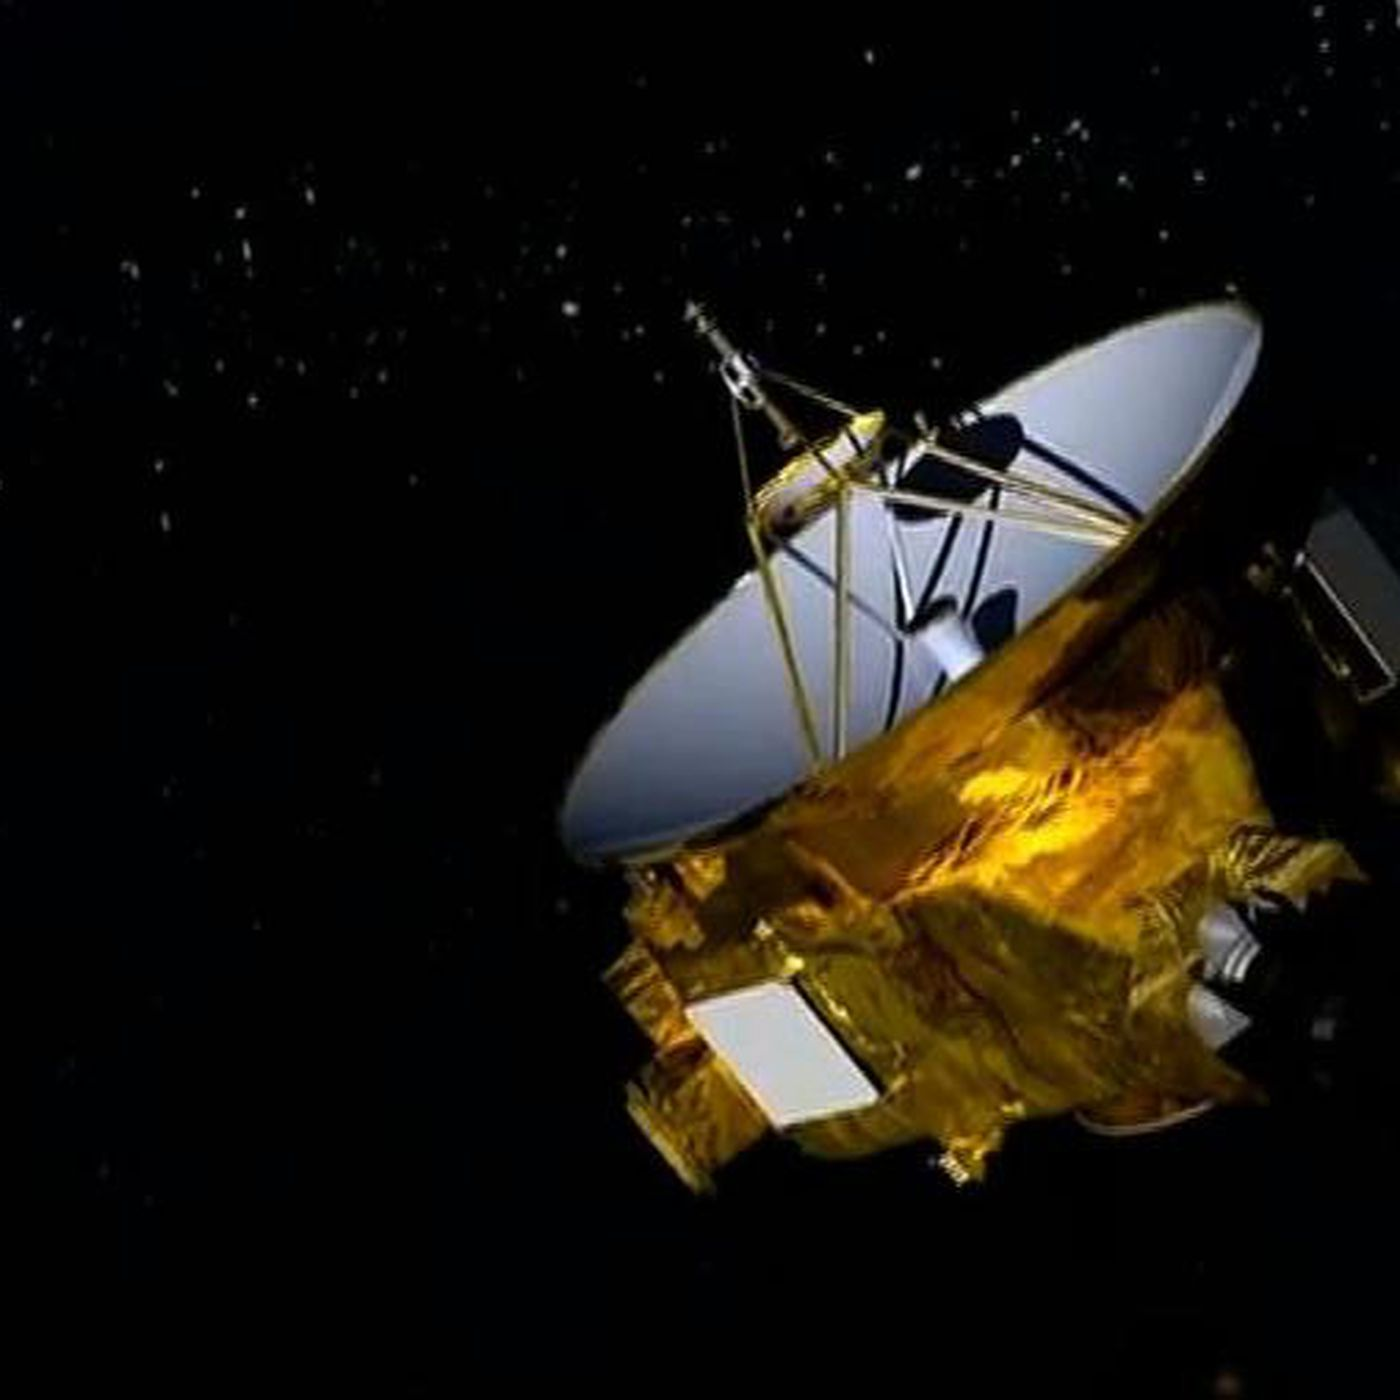 Why I'm Not Looking At NASA's Pluto Nudes ... And Neither Should You